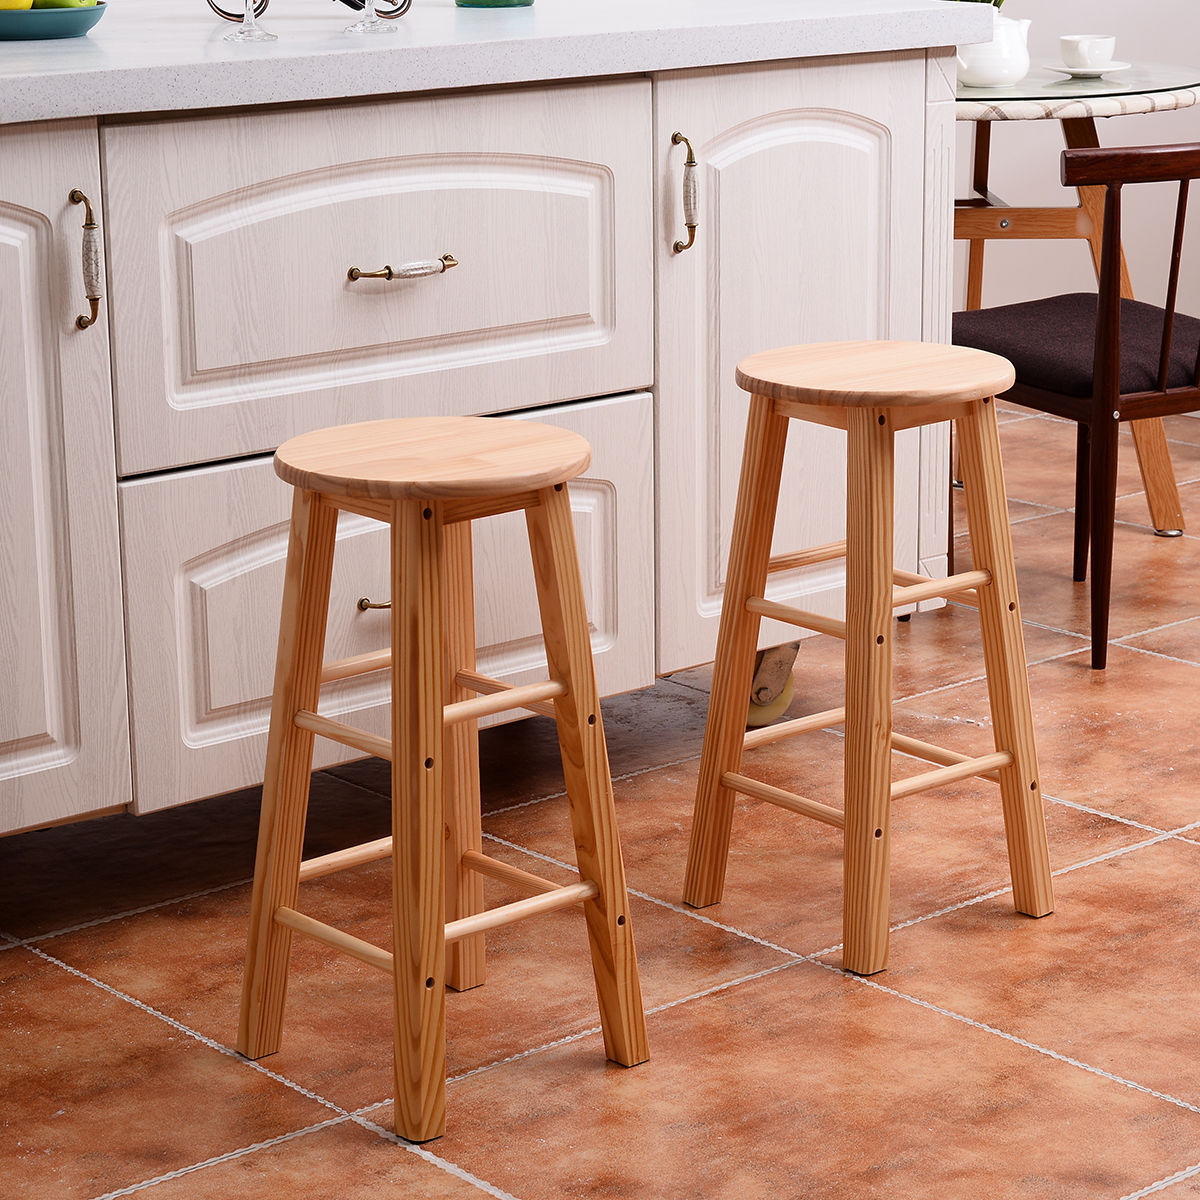 Ktaxon Set of 2 Wood 24-Inch Barstool Square Leg Bar Chairs Kitchen Stools & Kitchen Stools islam-shia.org